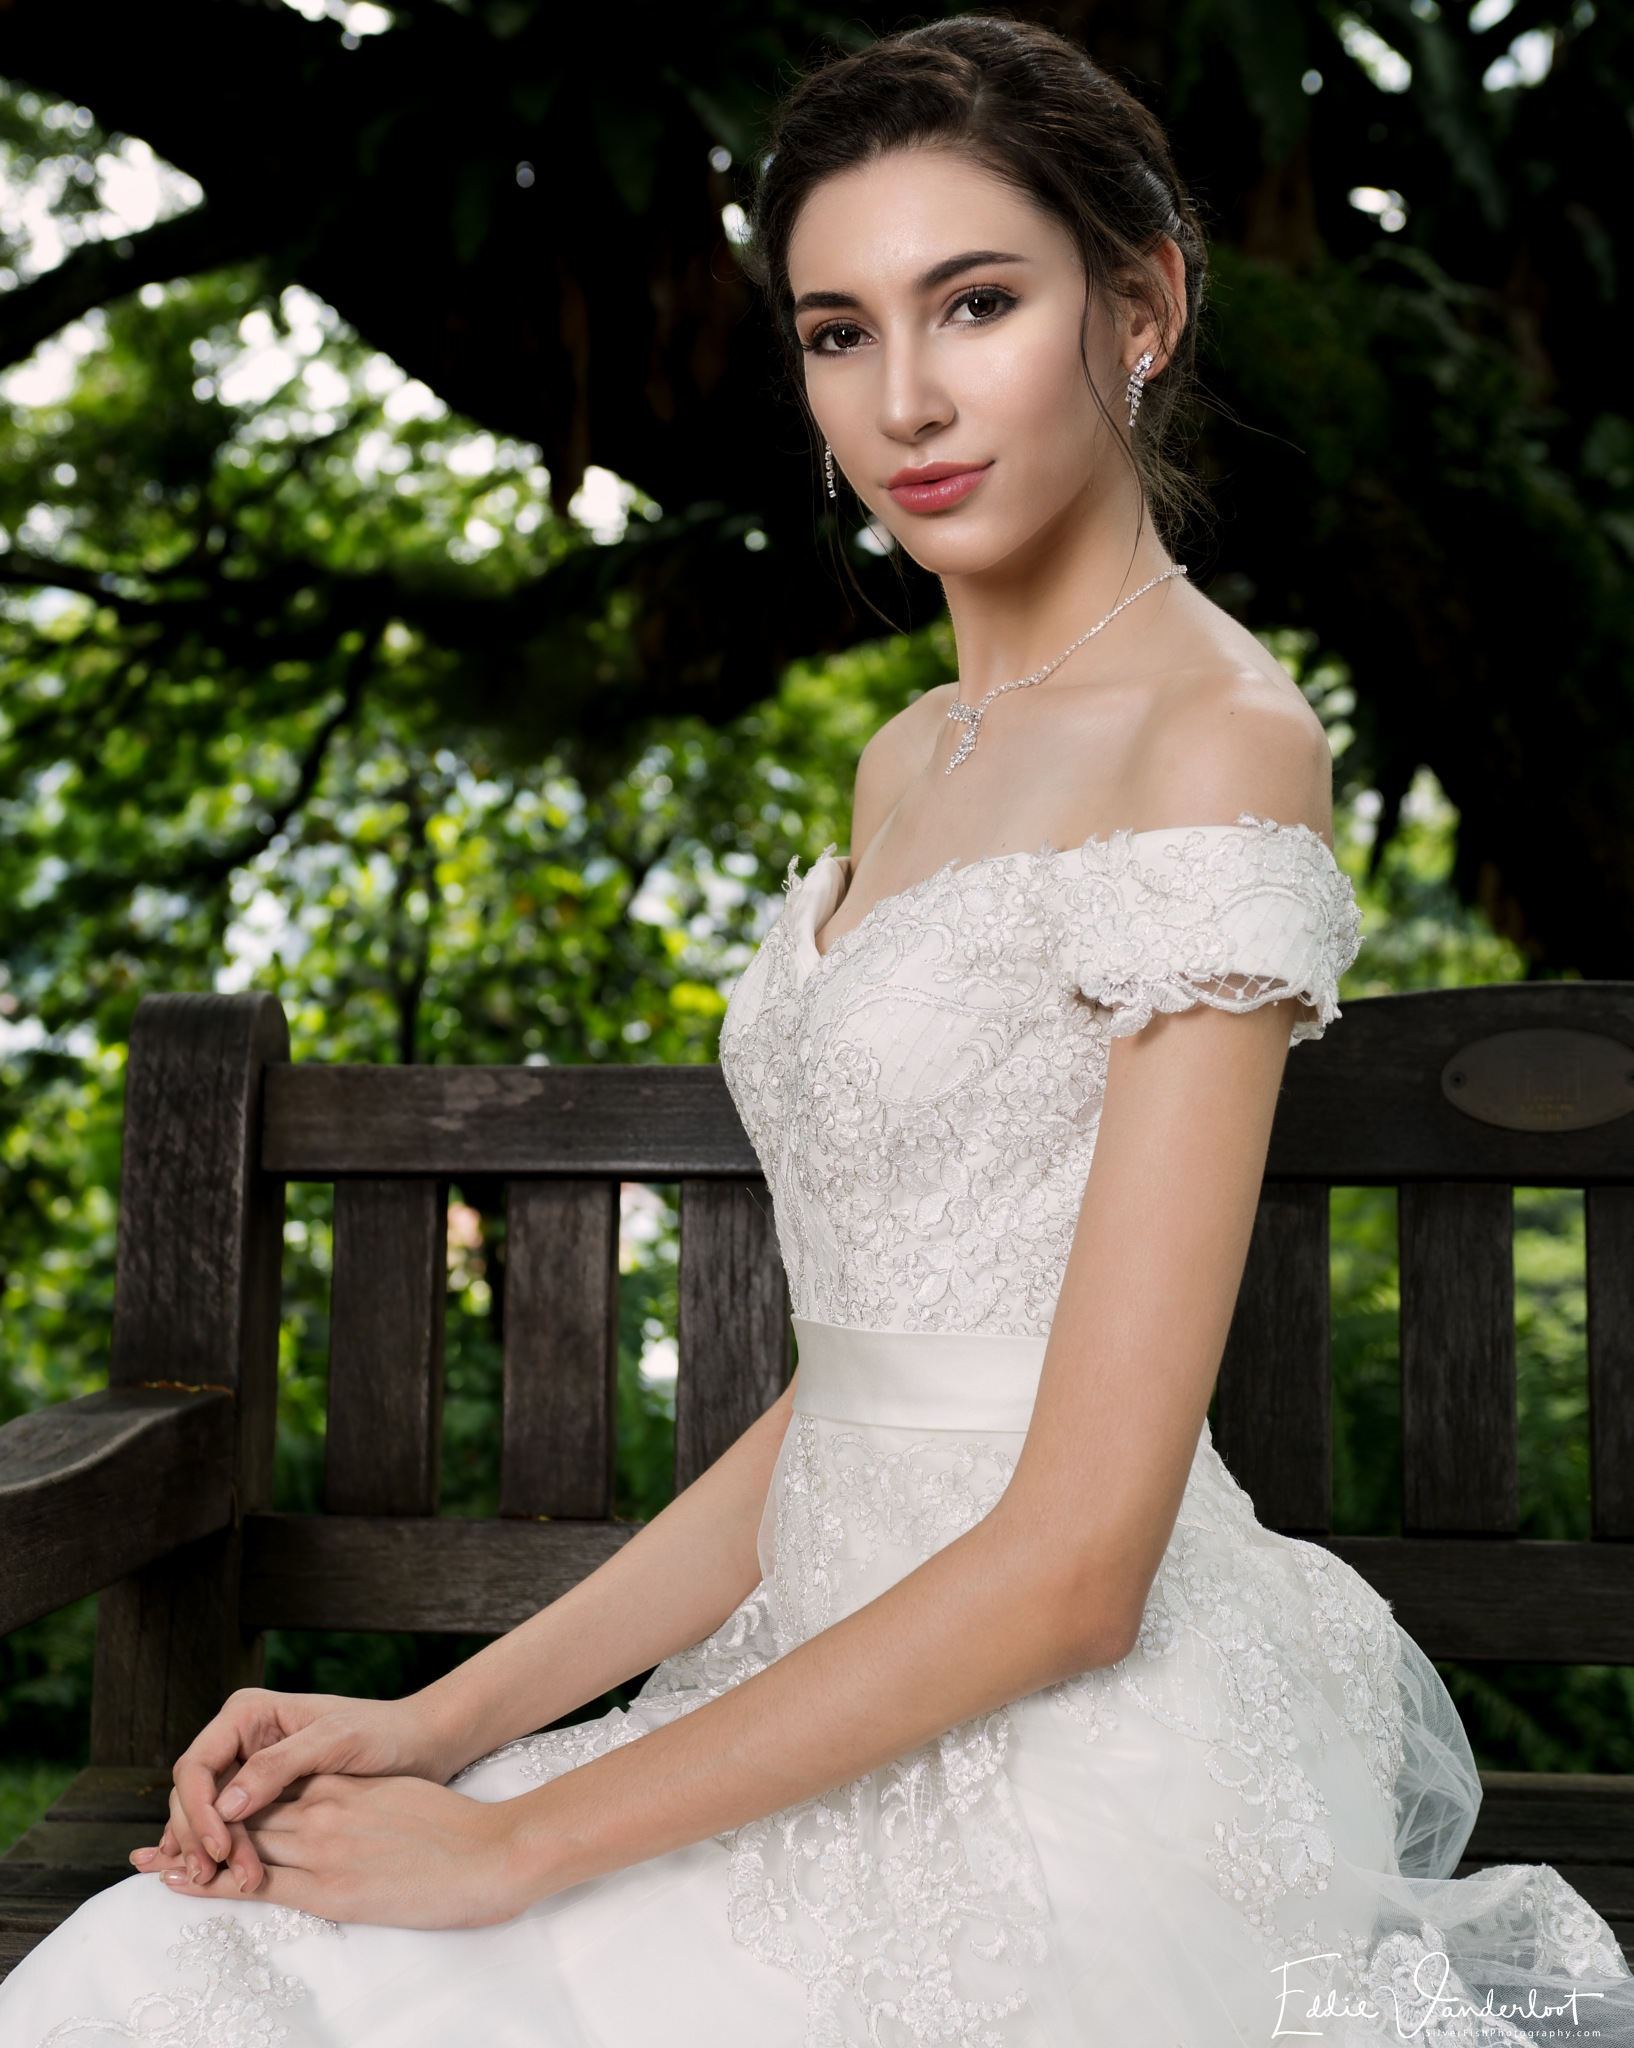 Beautiful bride with 1000 looks by Silverfish & Friends